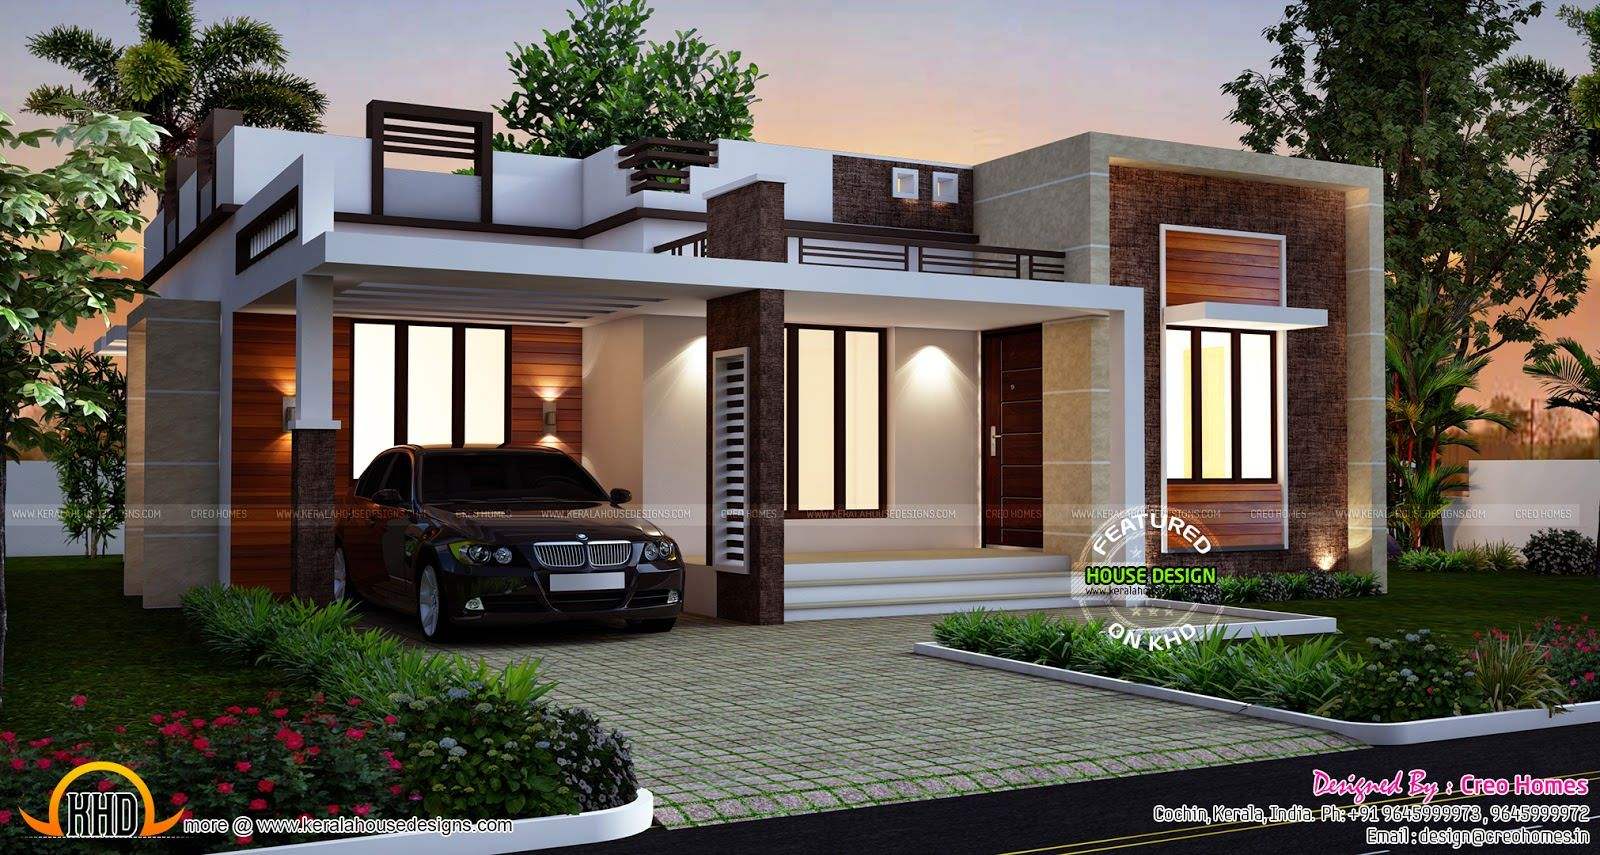 Designs homes design single story flat roof house plans - Single story 4 bedroom modern house plans ...